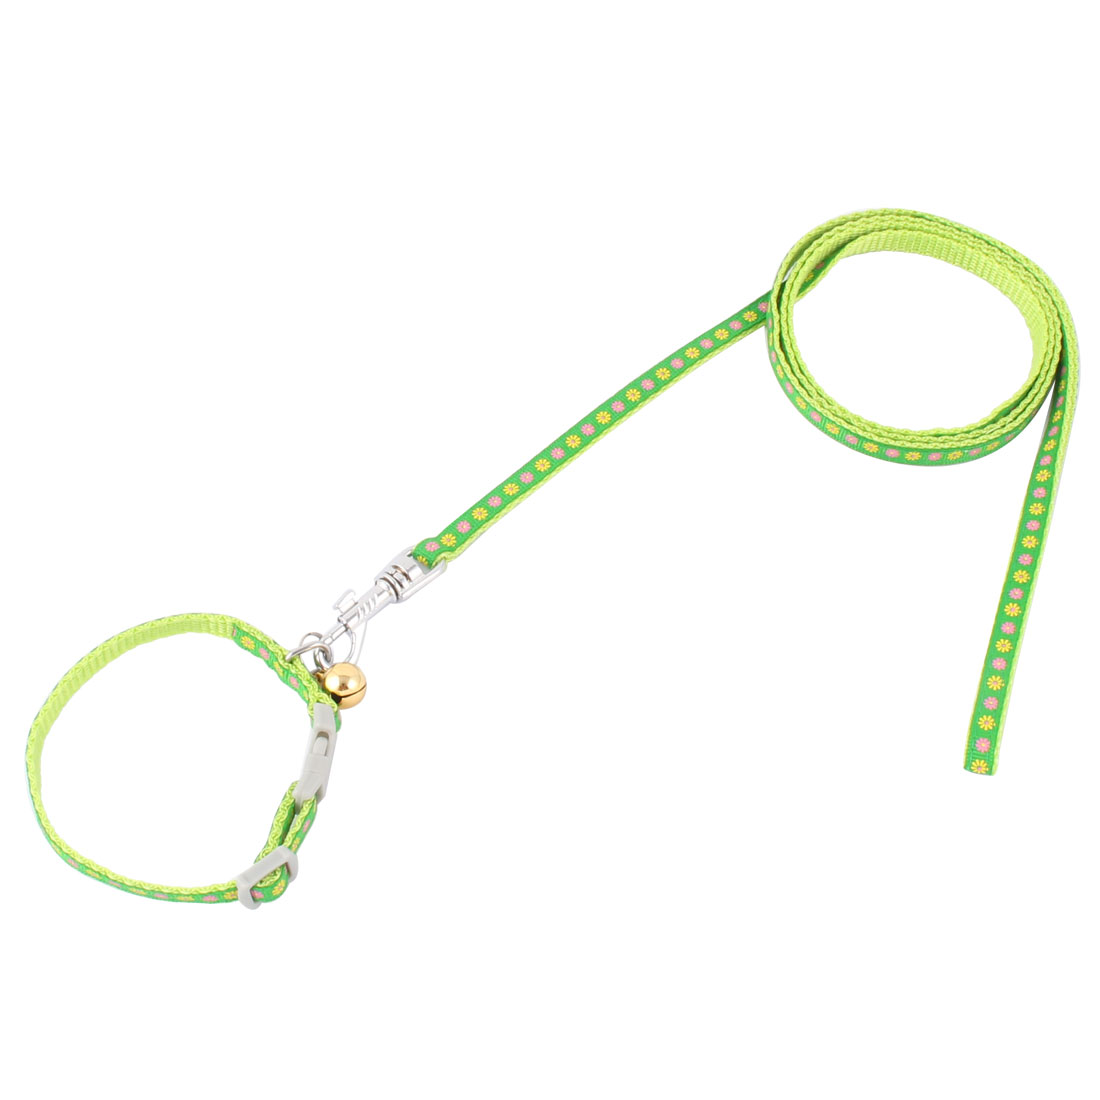 Pet Nylon Flowers Print Walking Control Adjustable Puppy Dog Neck Strap Collar Rope Green